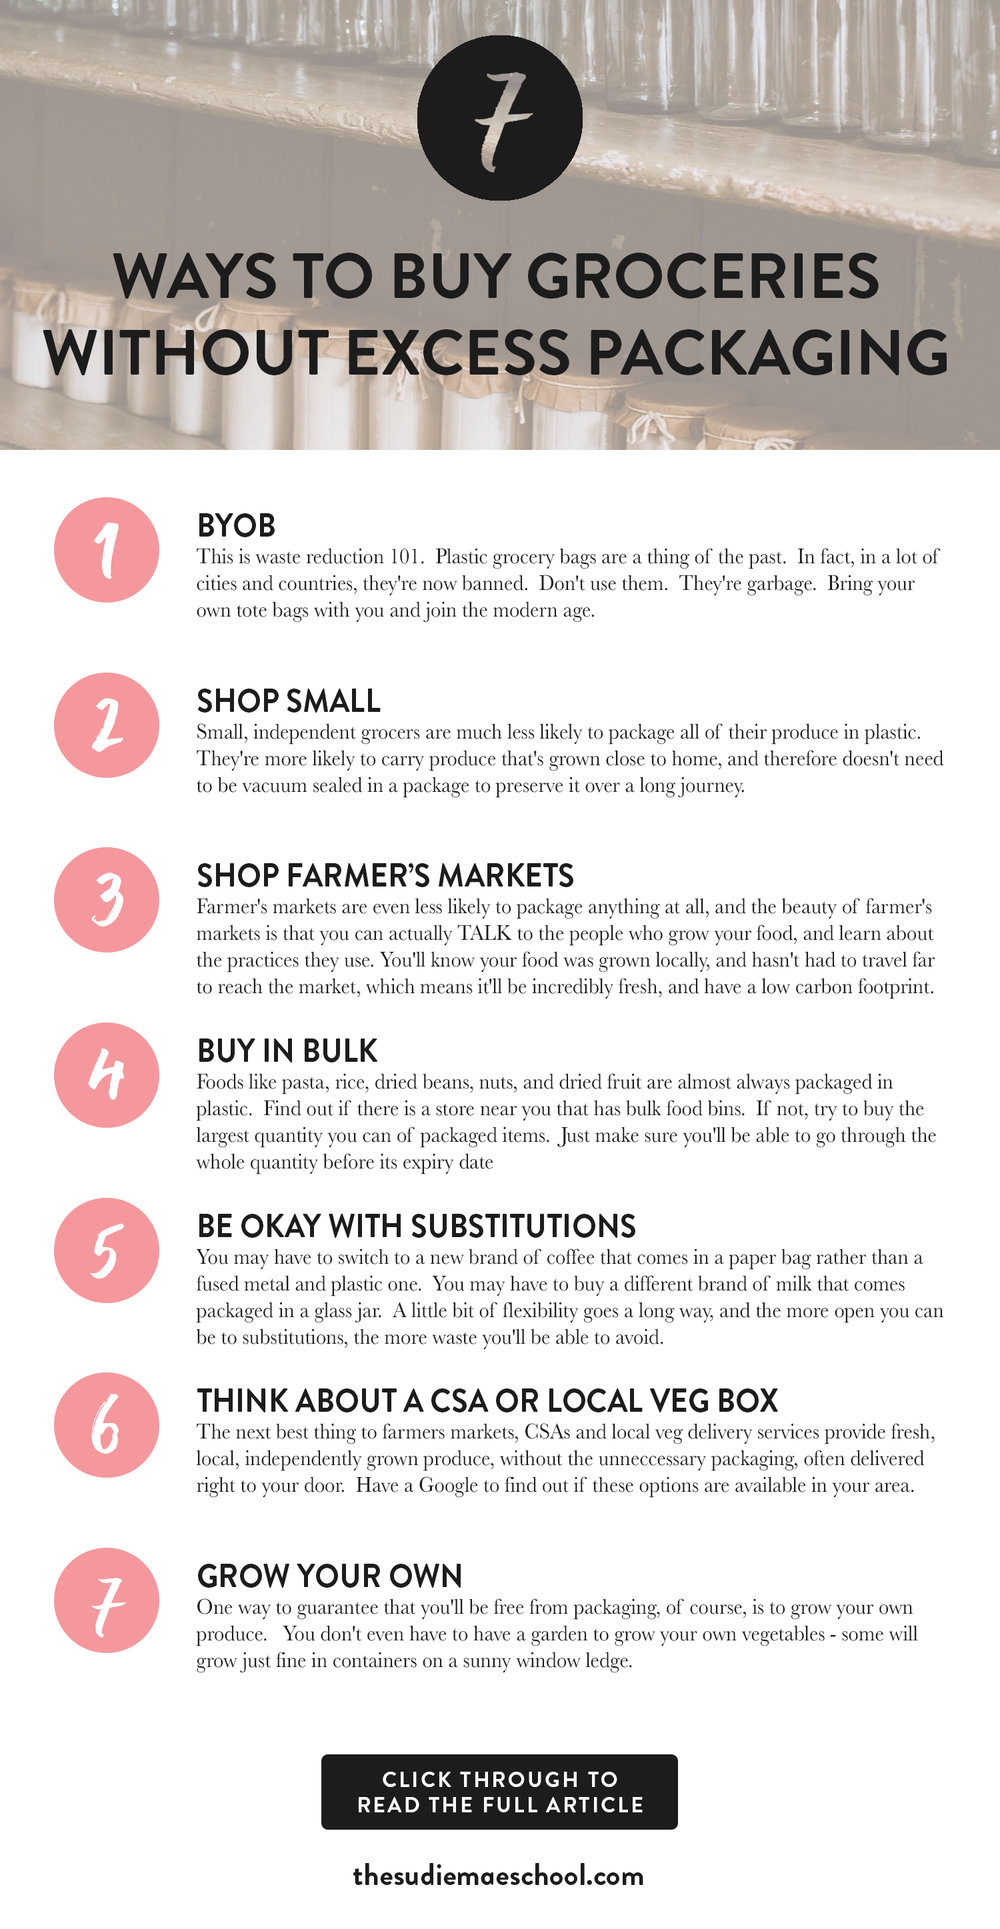 7 Ways To Buy Groceries Without Excess Packaging